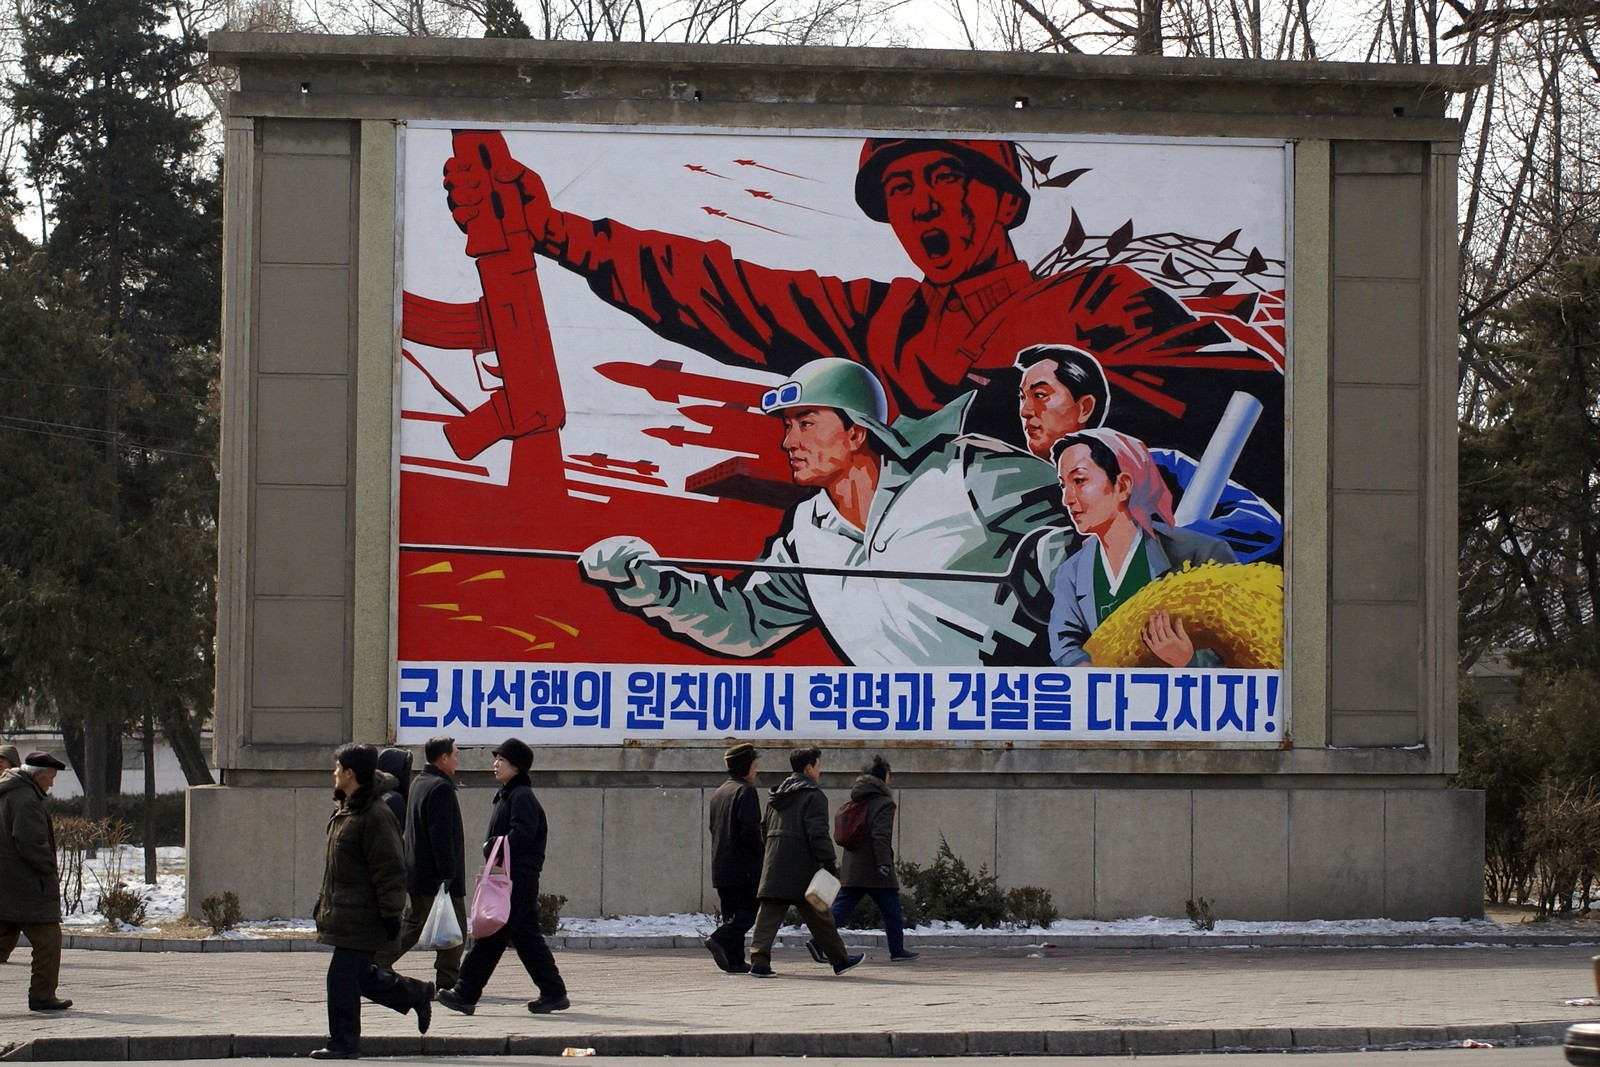 """""""Let us accelerate revolution and construction according to the principle of giving precedence to military affairs!"""""""